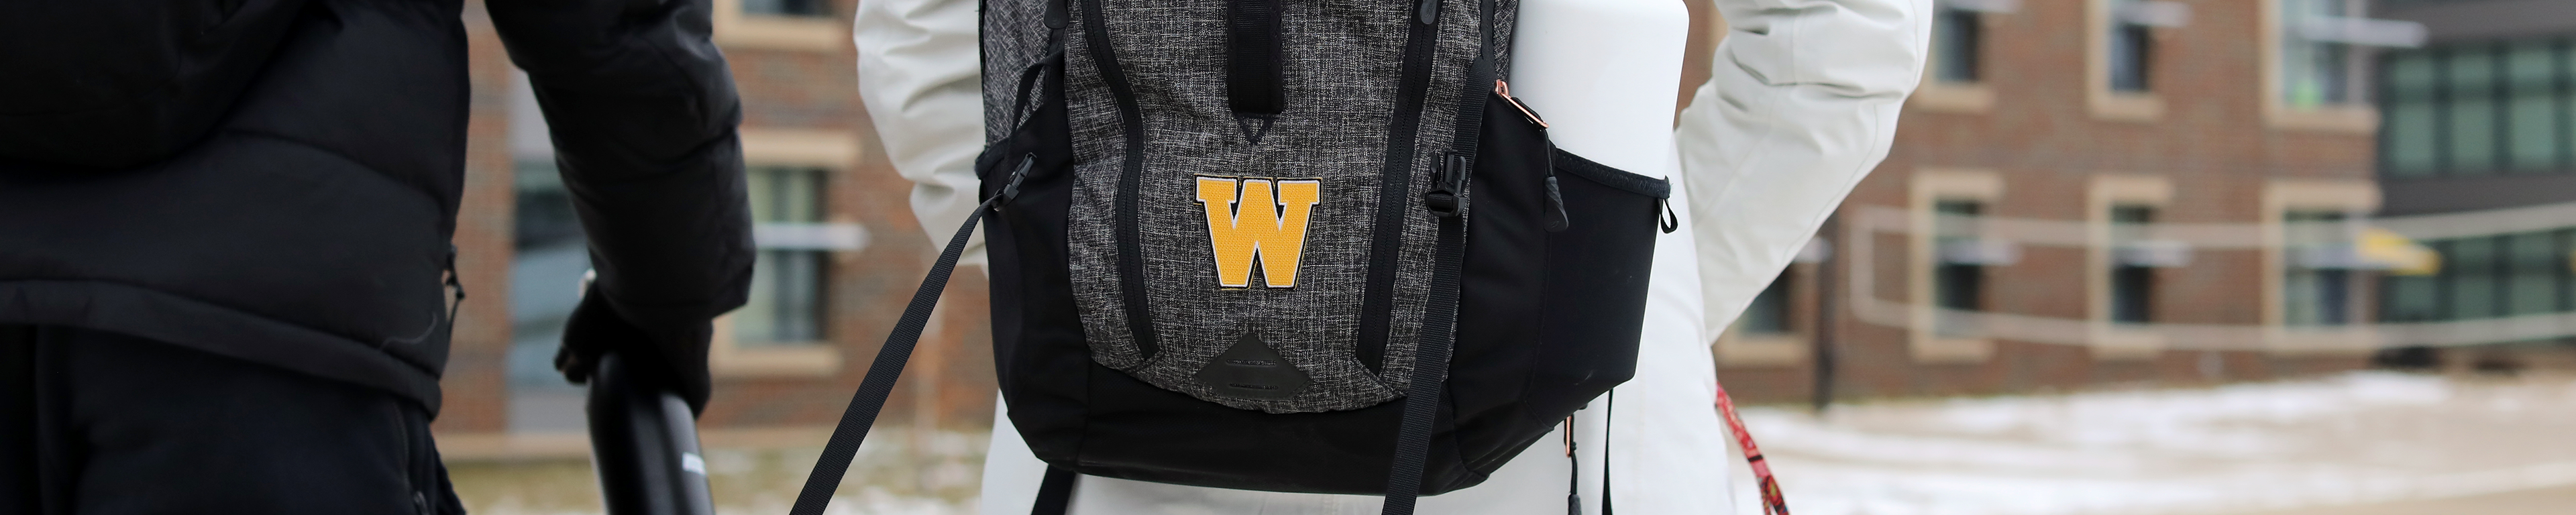 Page banner: students walking with WMU logo on backpack